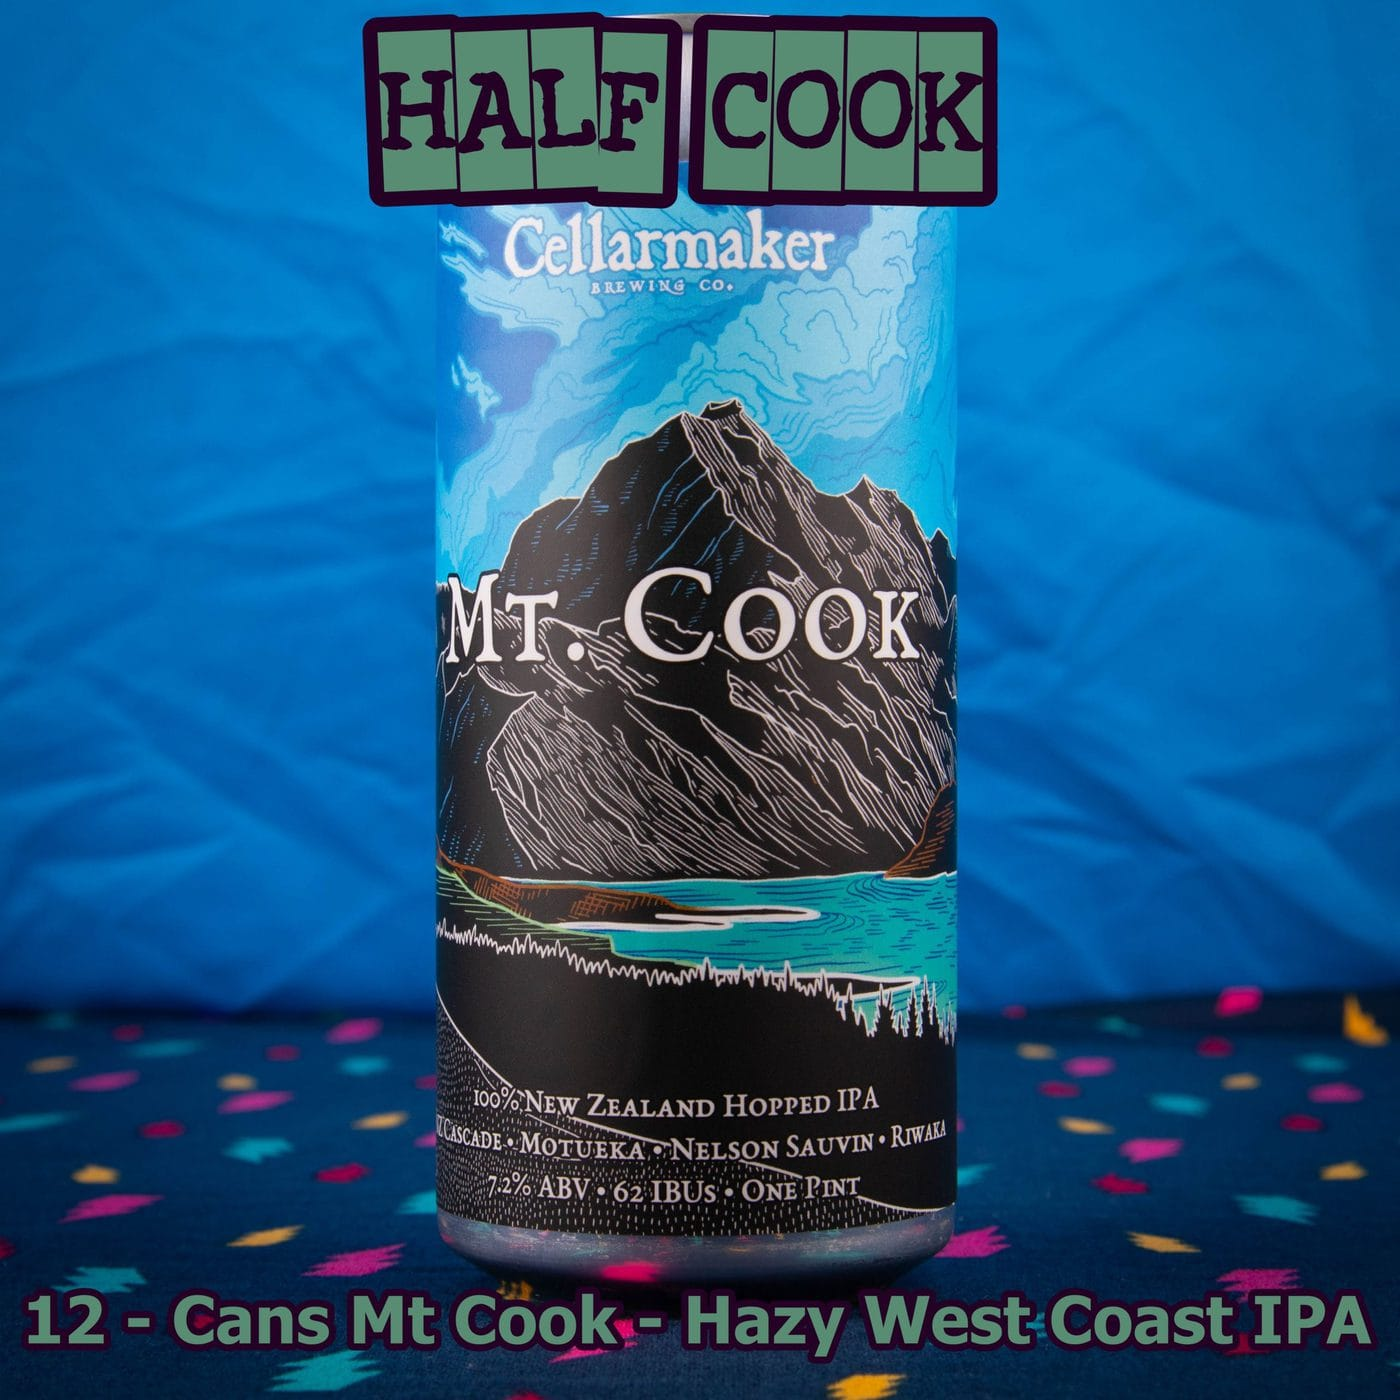 12 CANS Mt Cook IPA – Shipping Out Tuesday 5/11 For Next Day Delivery*